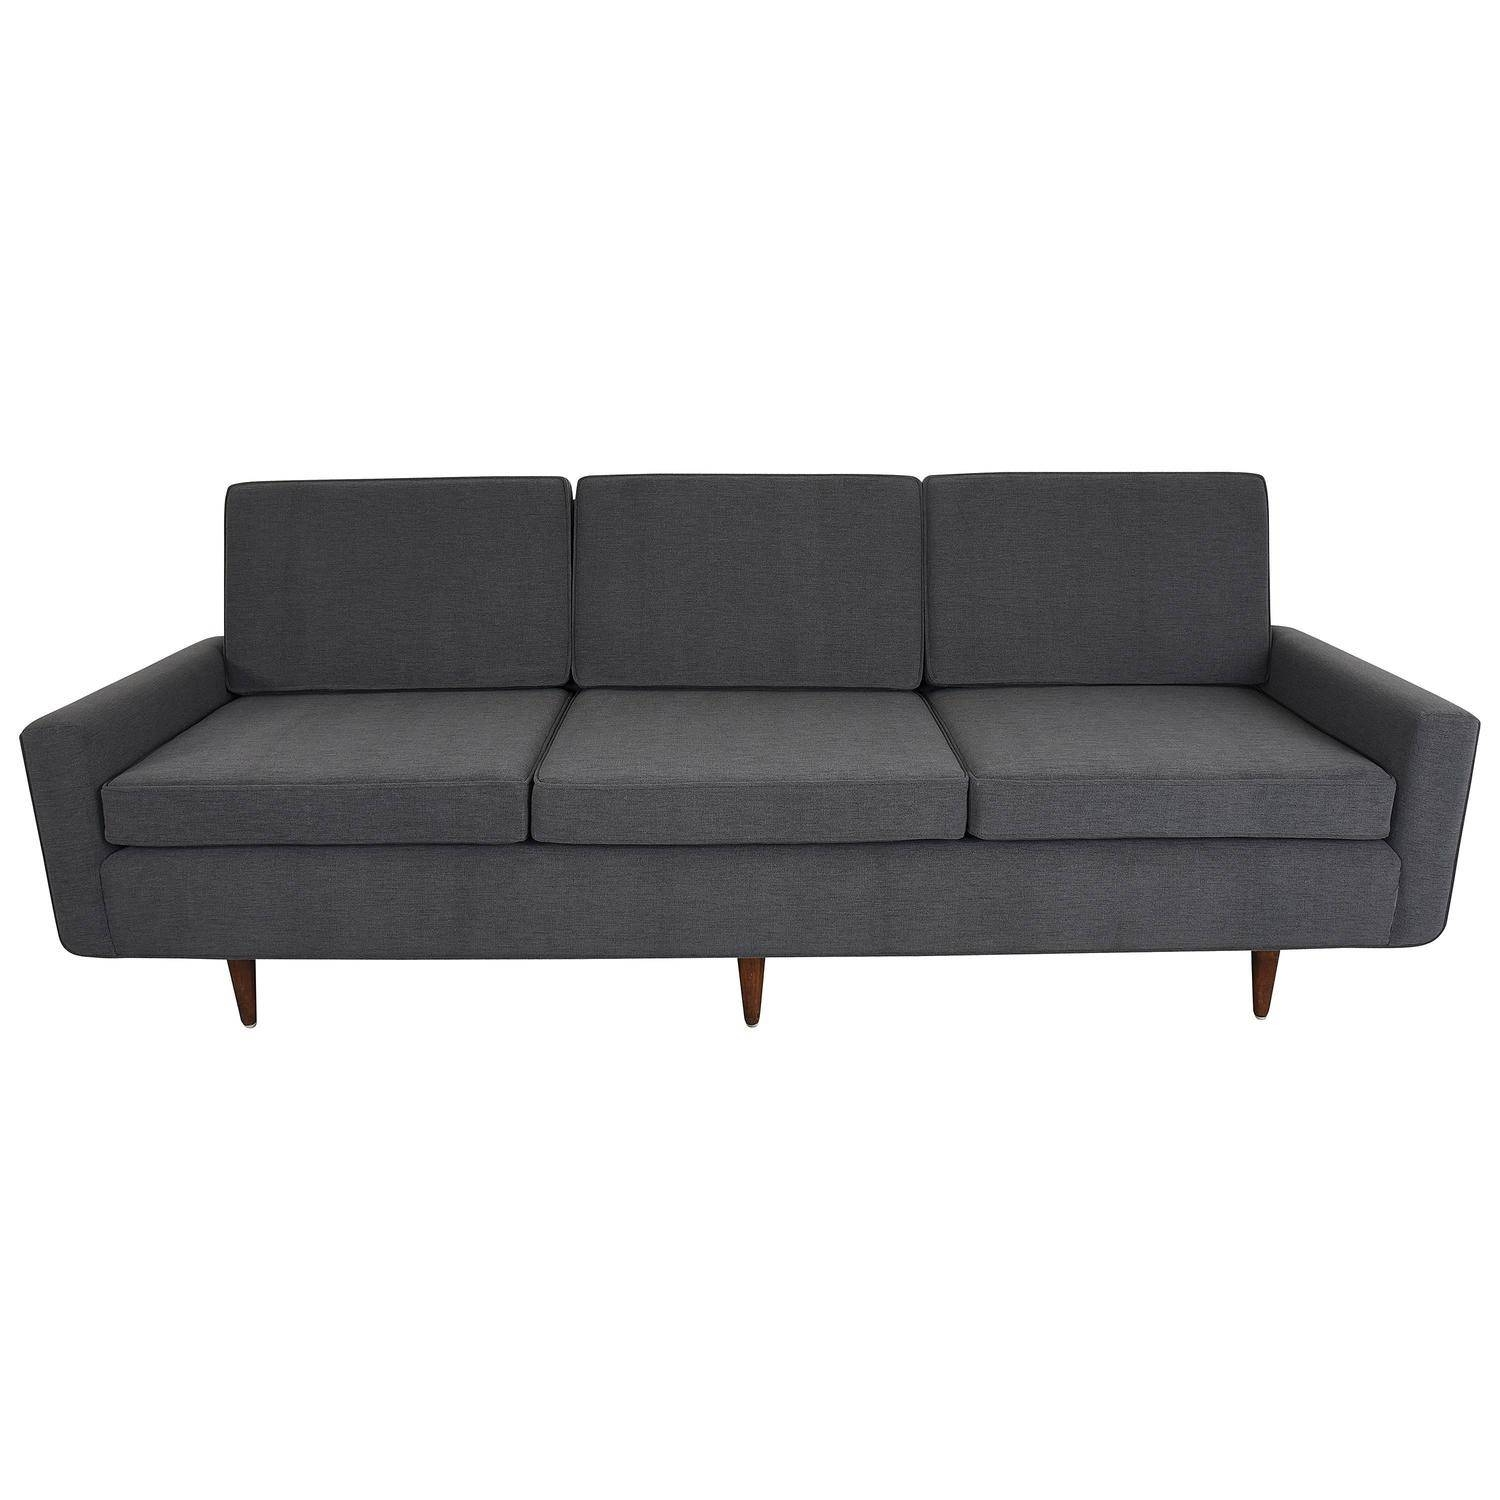 Florence Knoll Sofa Three-Seat Sofa, Model 26, Pair Available For with Florence Knoll Leather Sofas (Image 9 of 25)